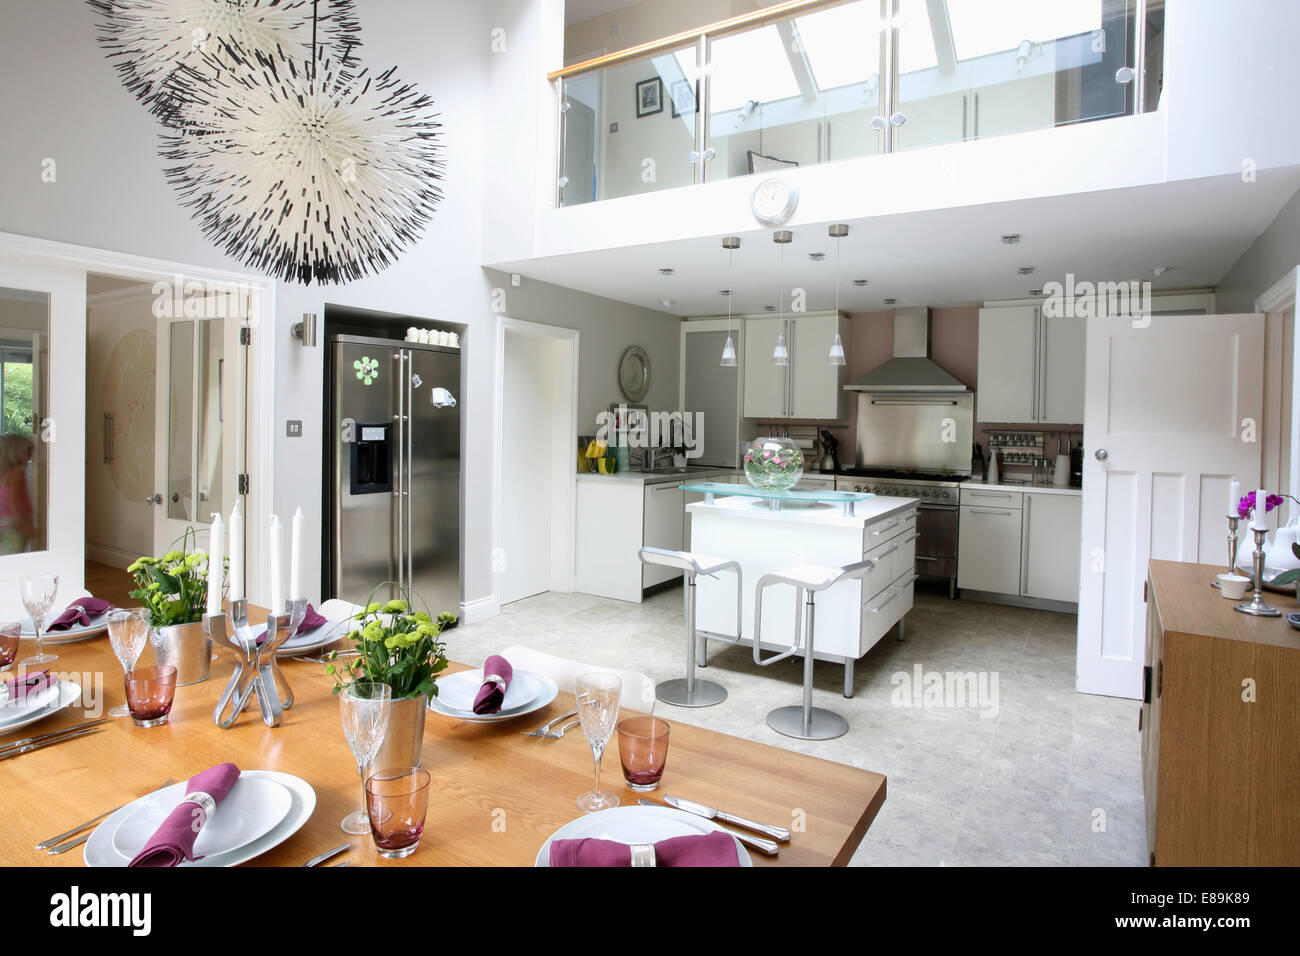 Modern Pendant Lighting Above Table Set For Lunch In Large Modern Kitchen  And Dining Room Extension